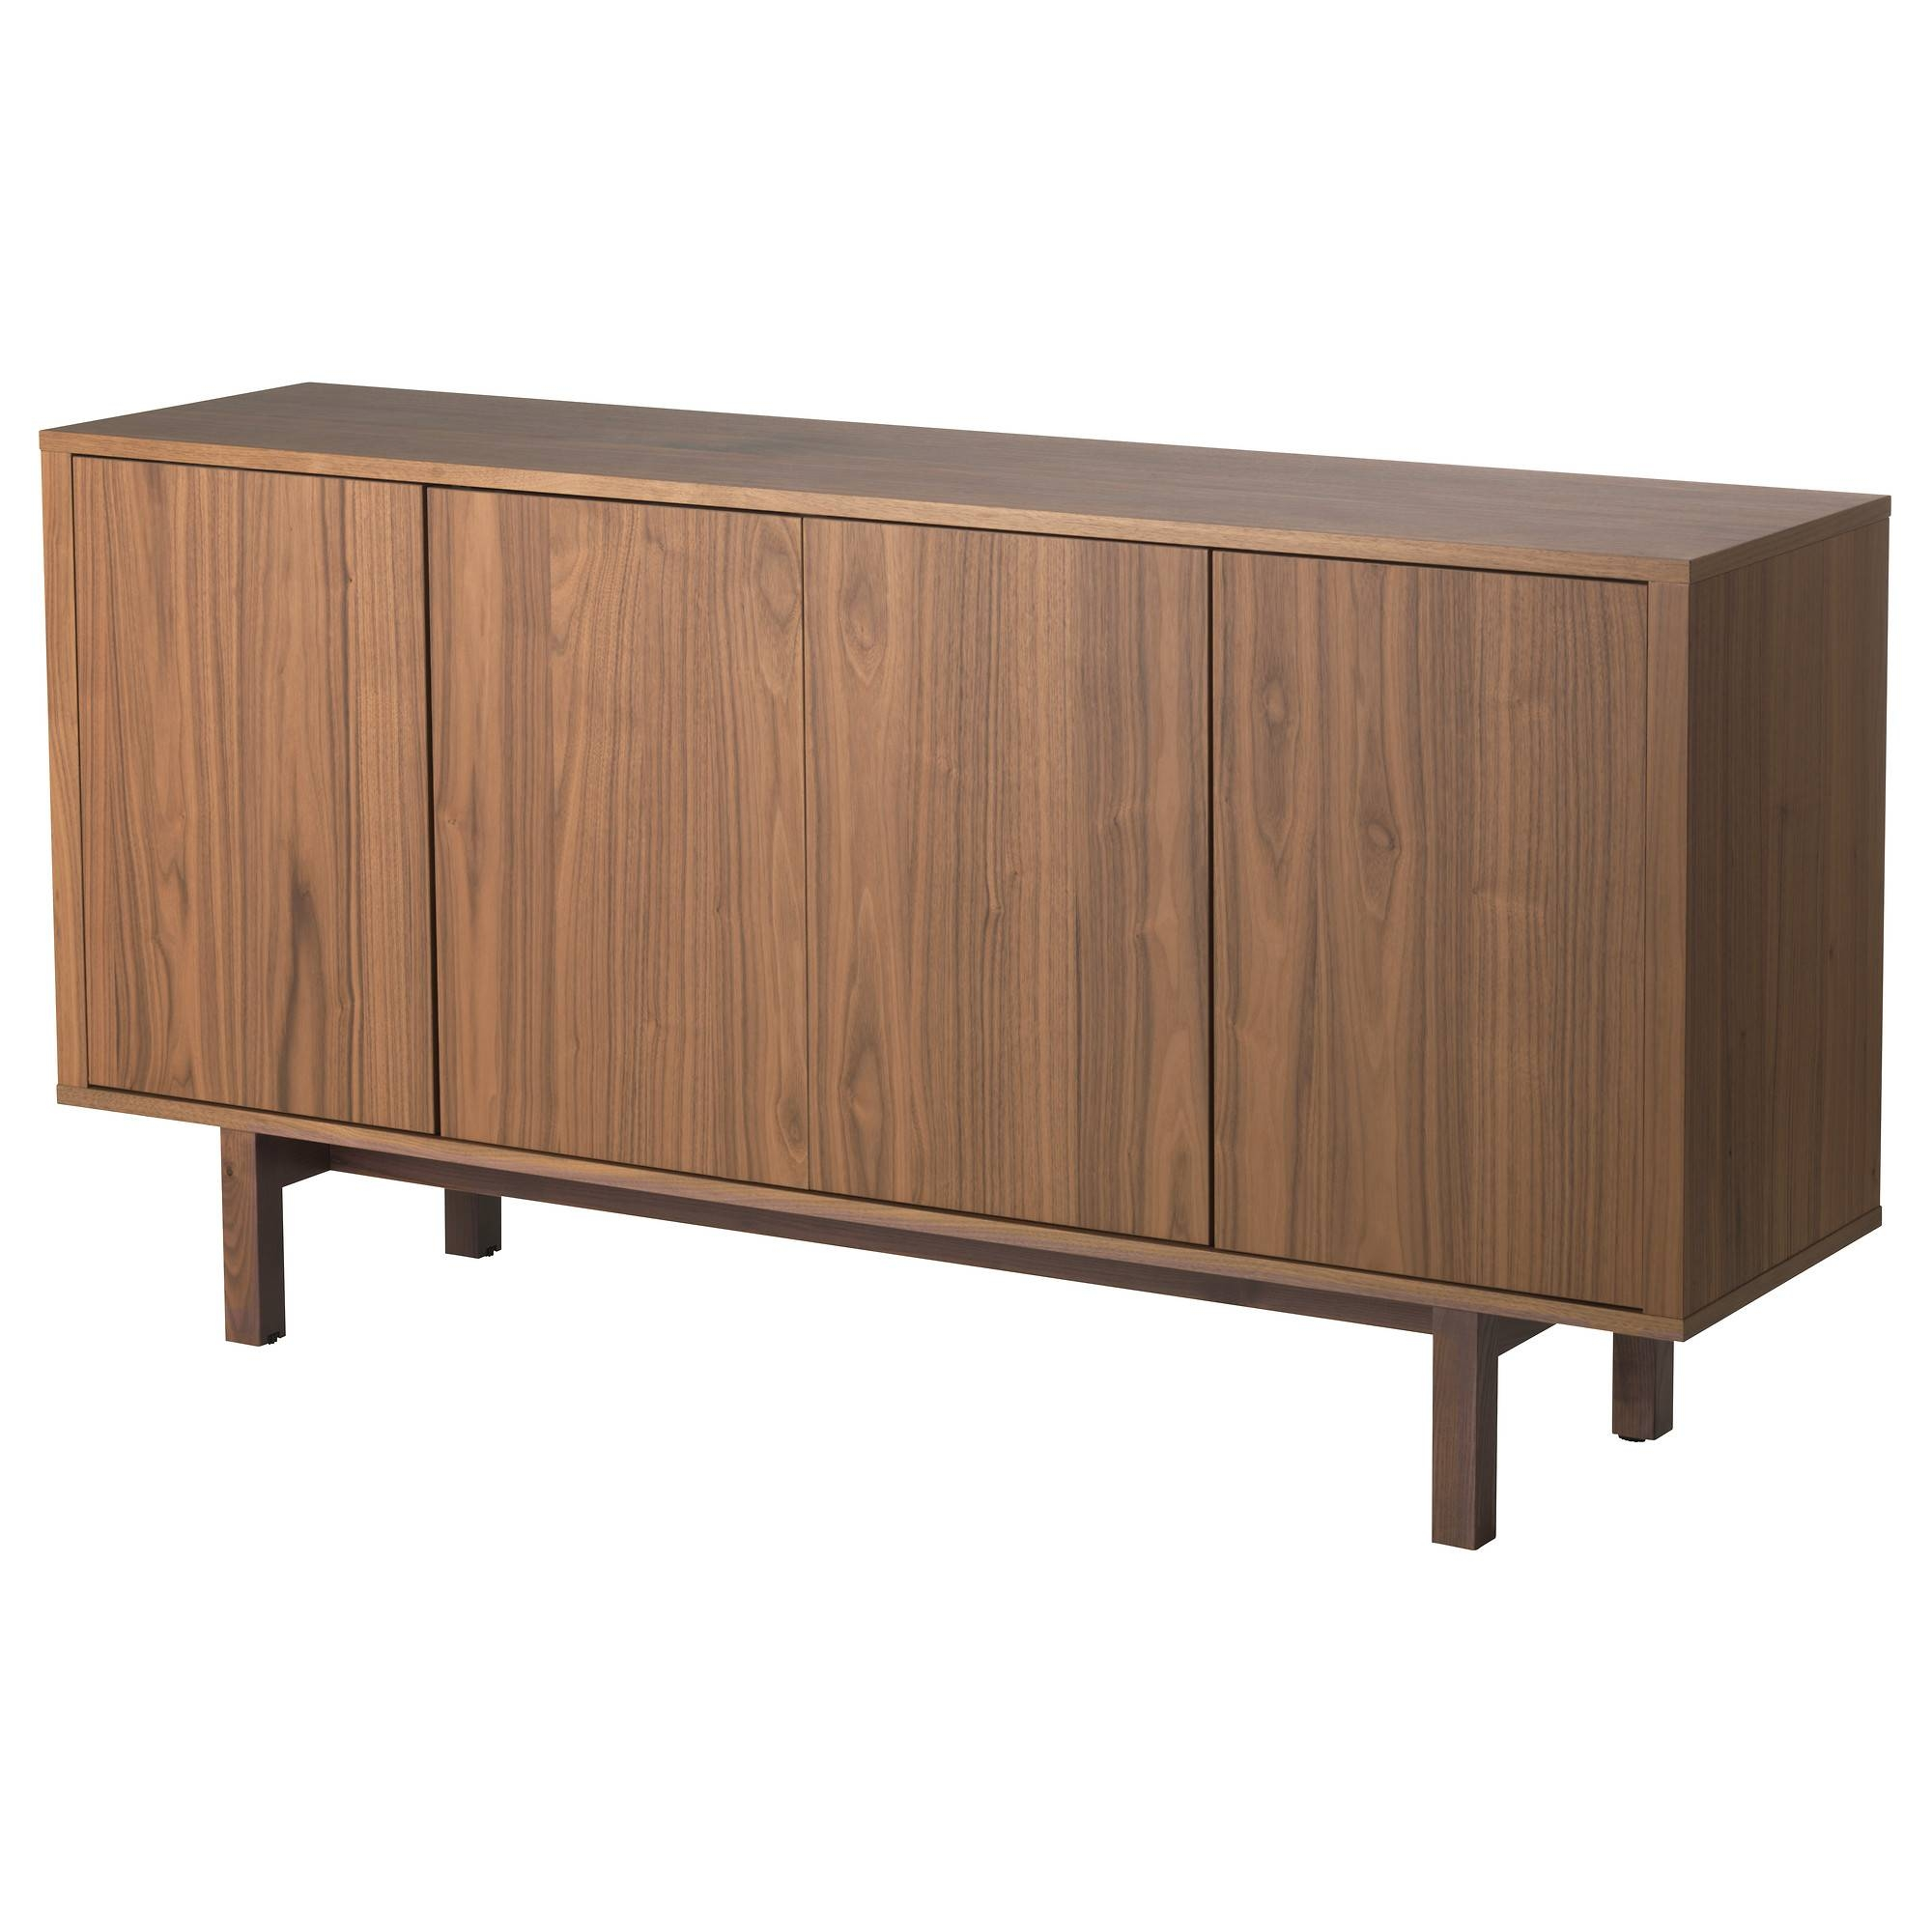 Buffet Tables & Sideboards - Ikea in Walnut and Black Sideboards (Image 5 of 30)